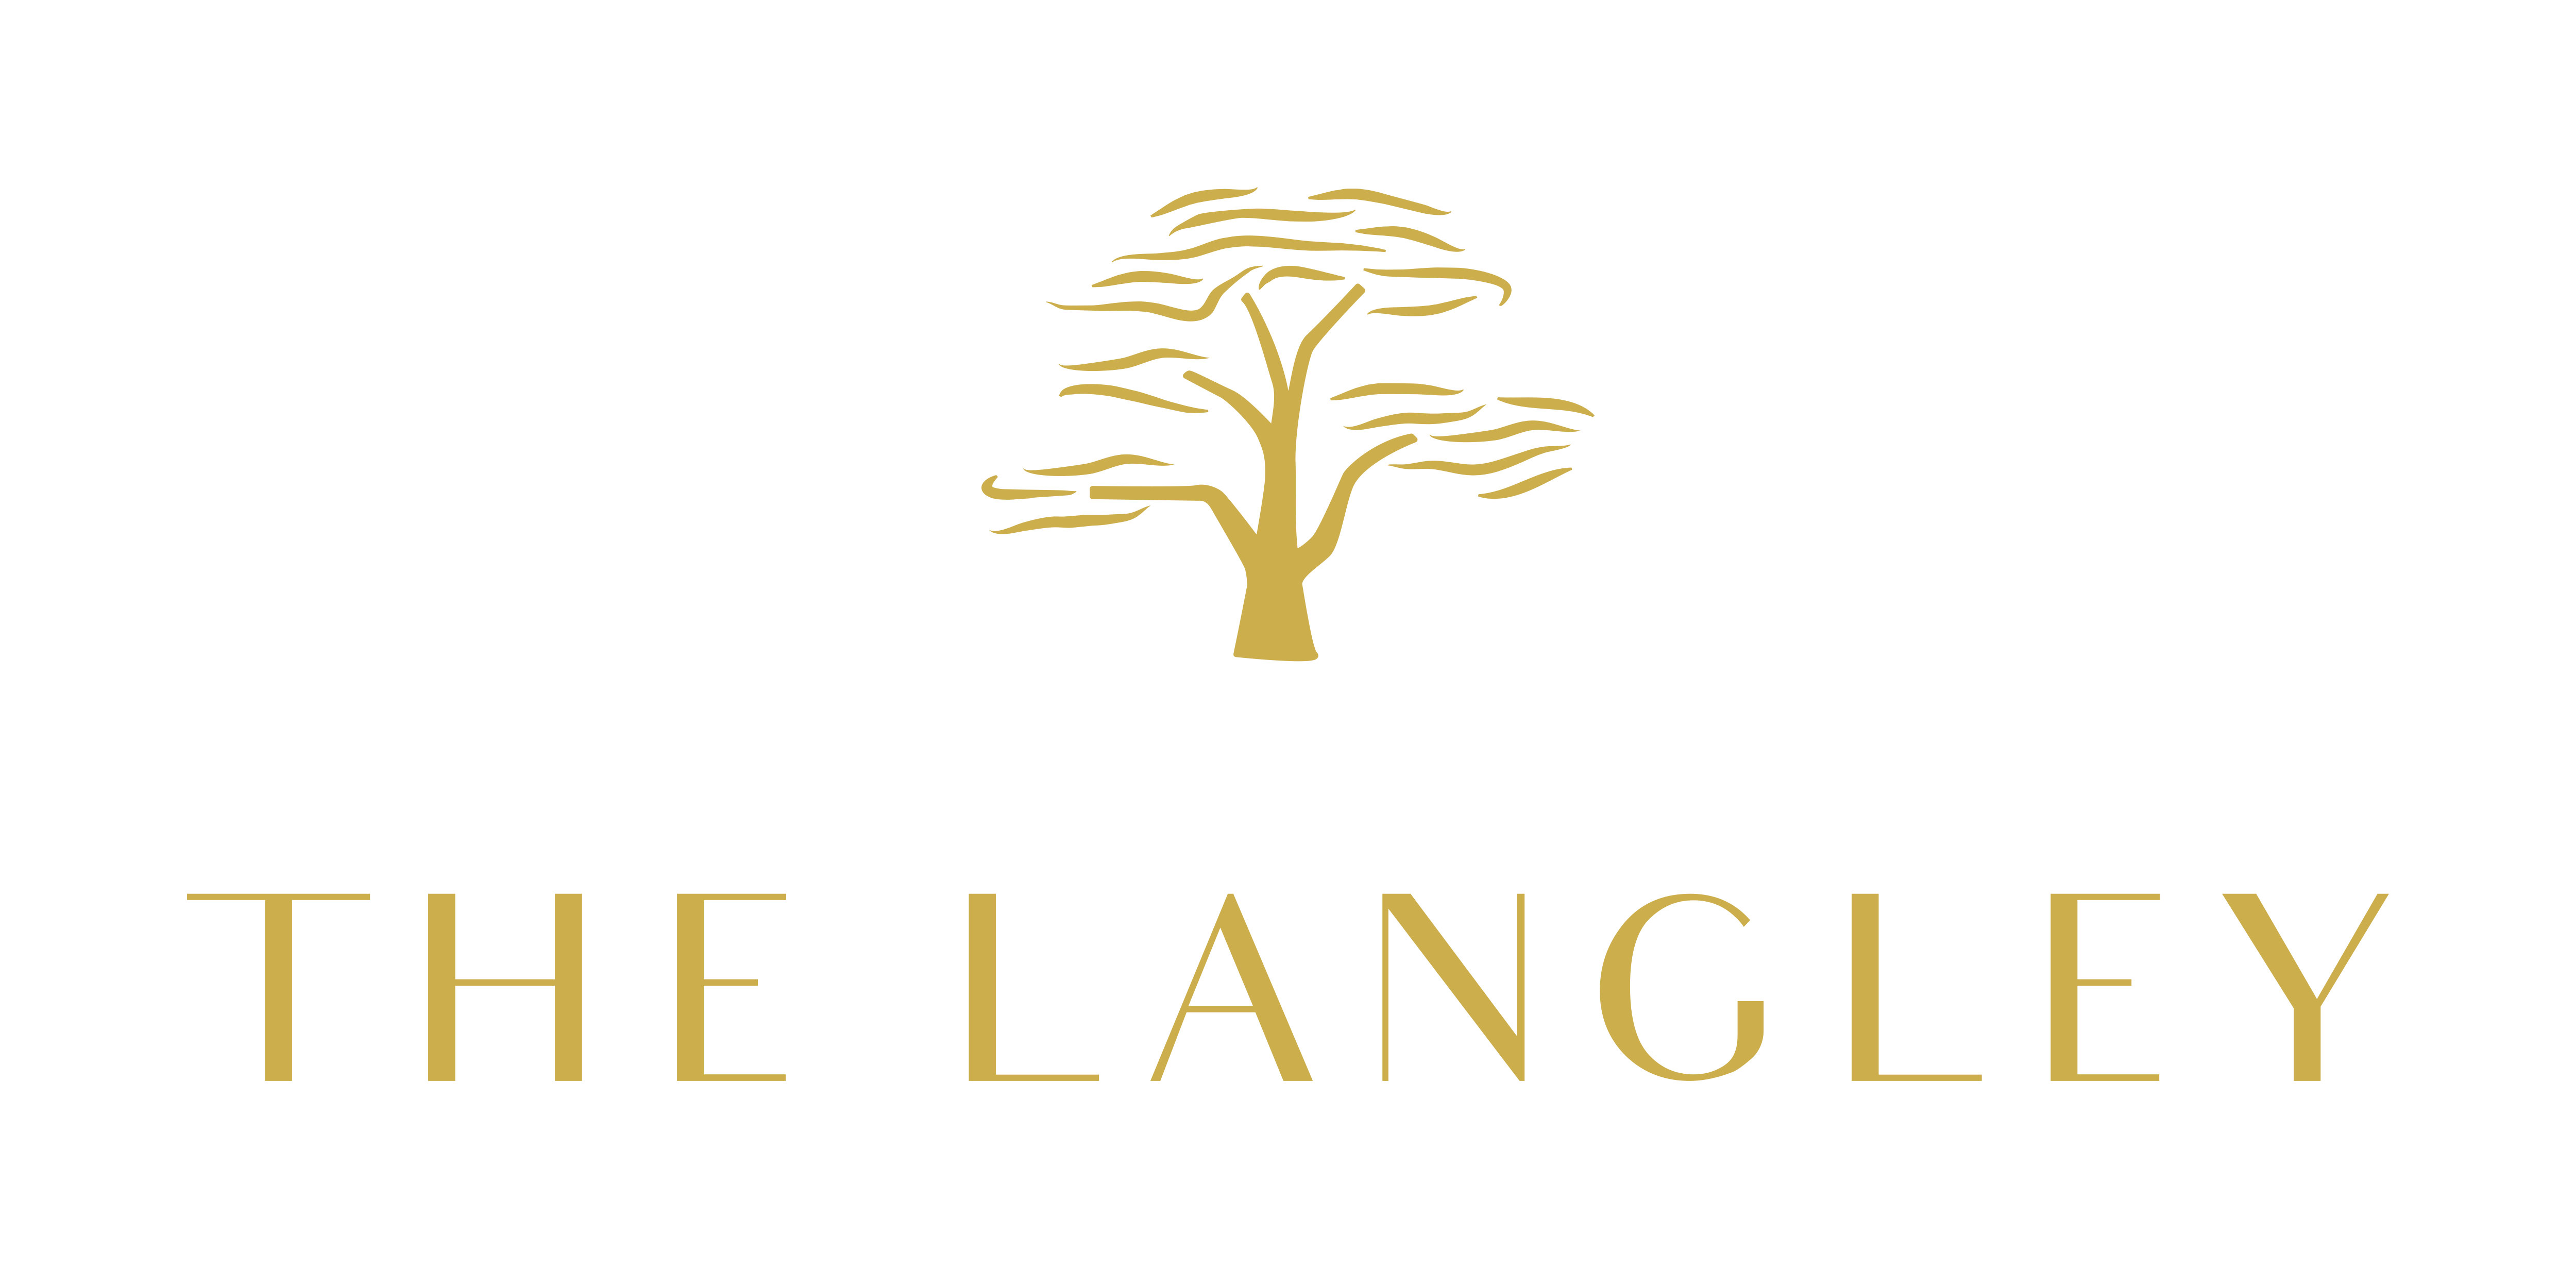 The Langley